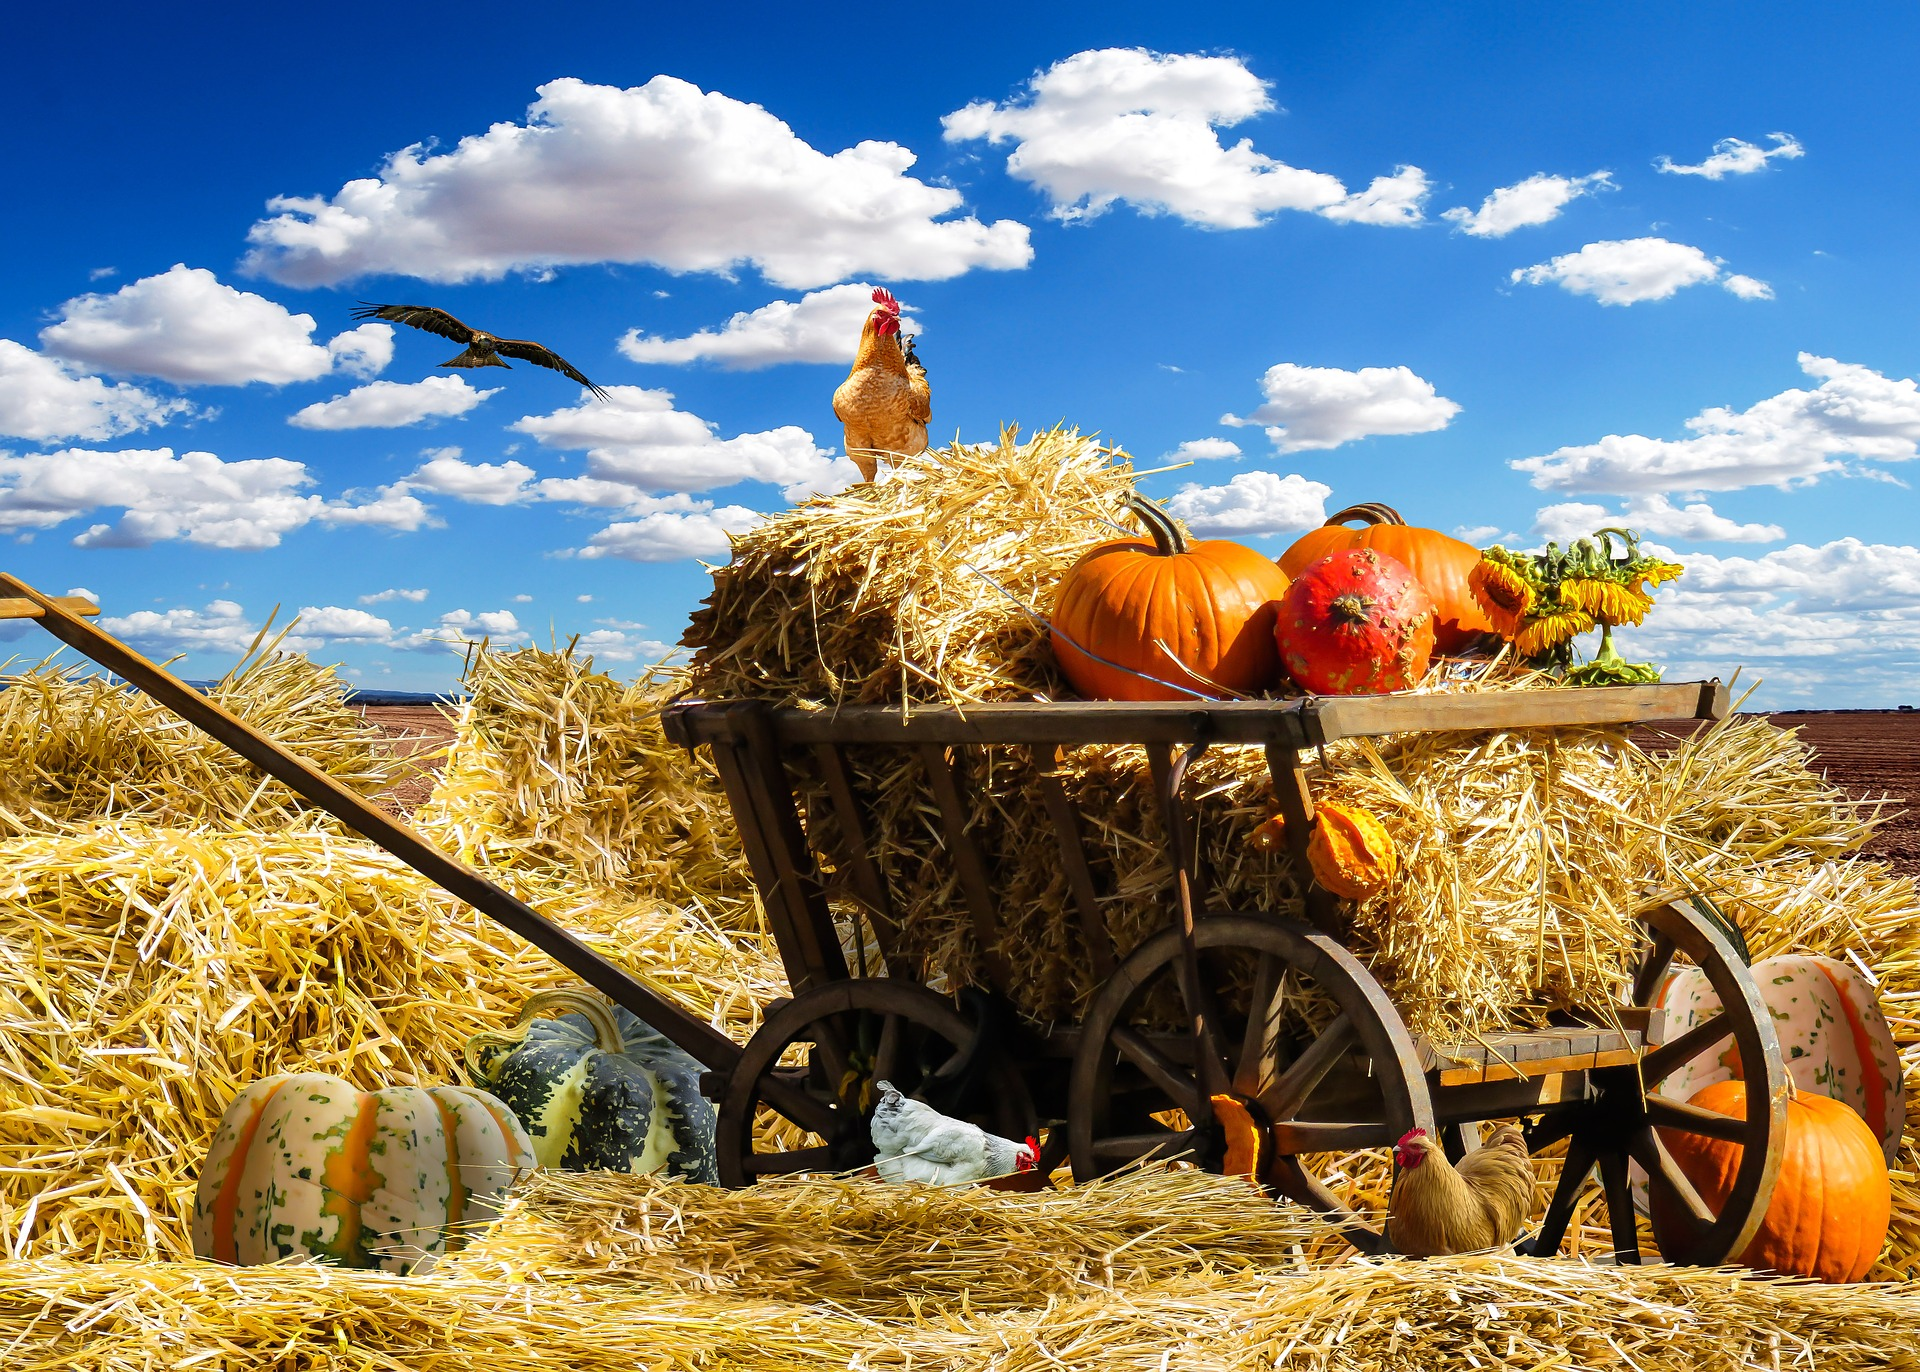 Pumpkin Panic picture, pumpkins in a cart with hay